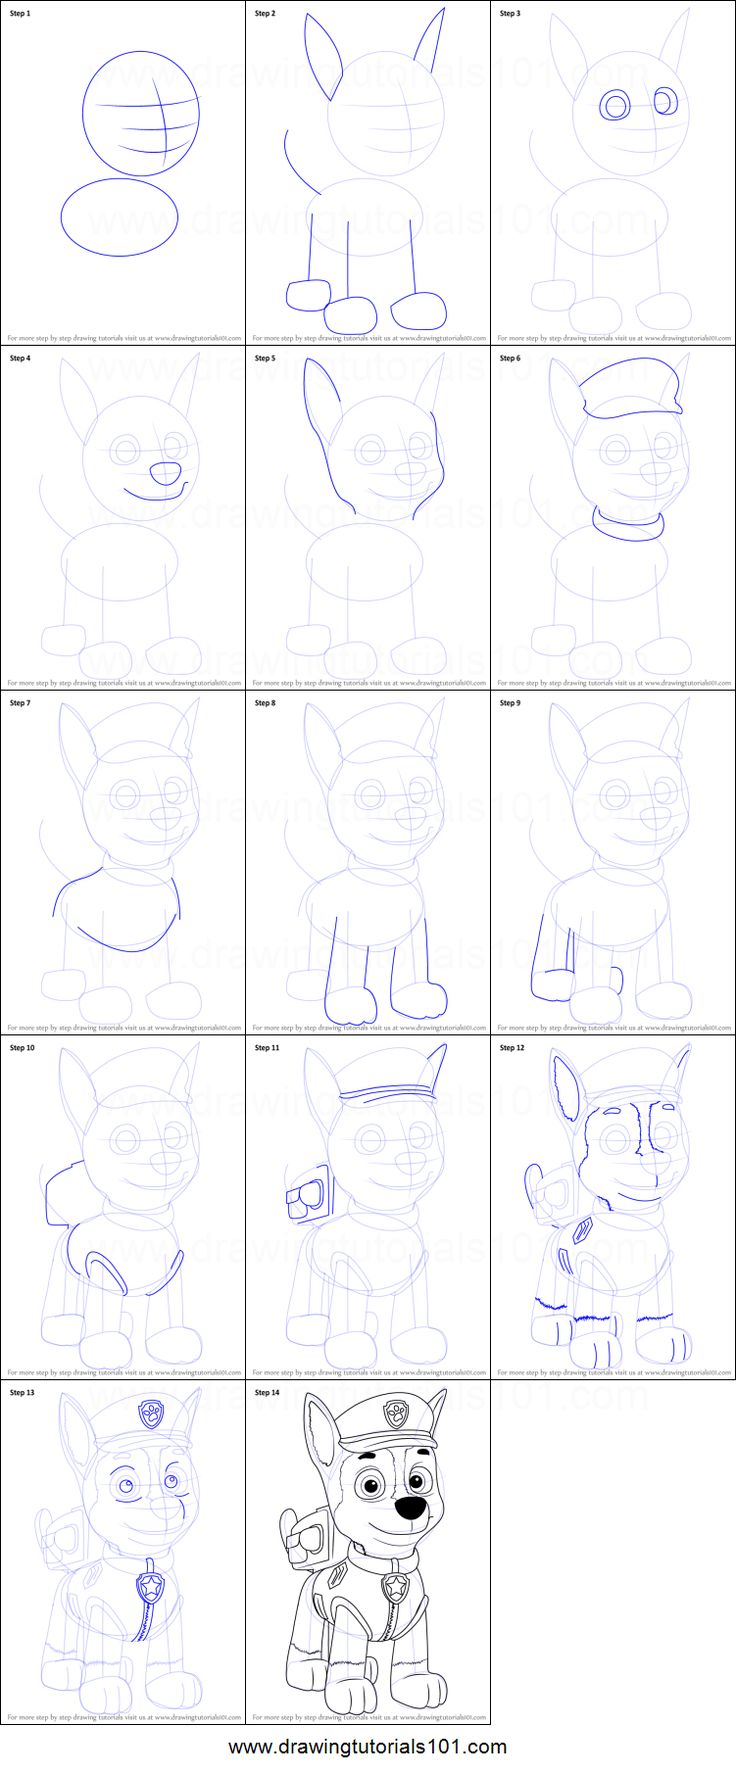 how to draw paw patrol logo step by step